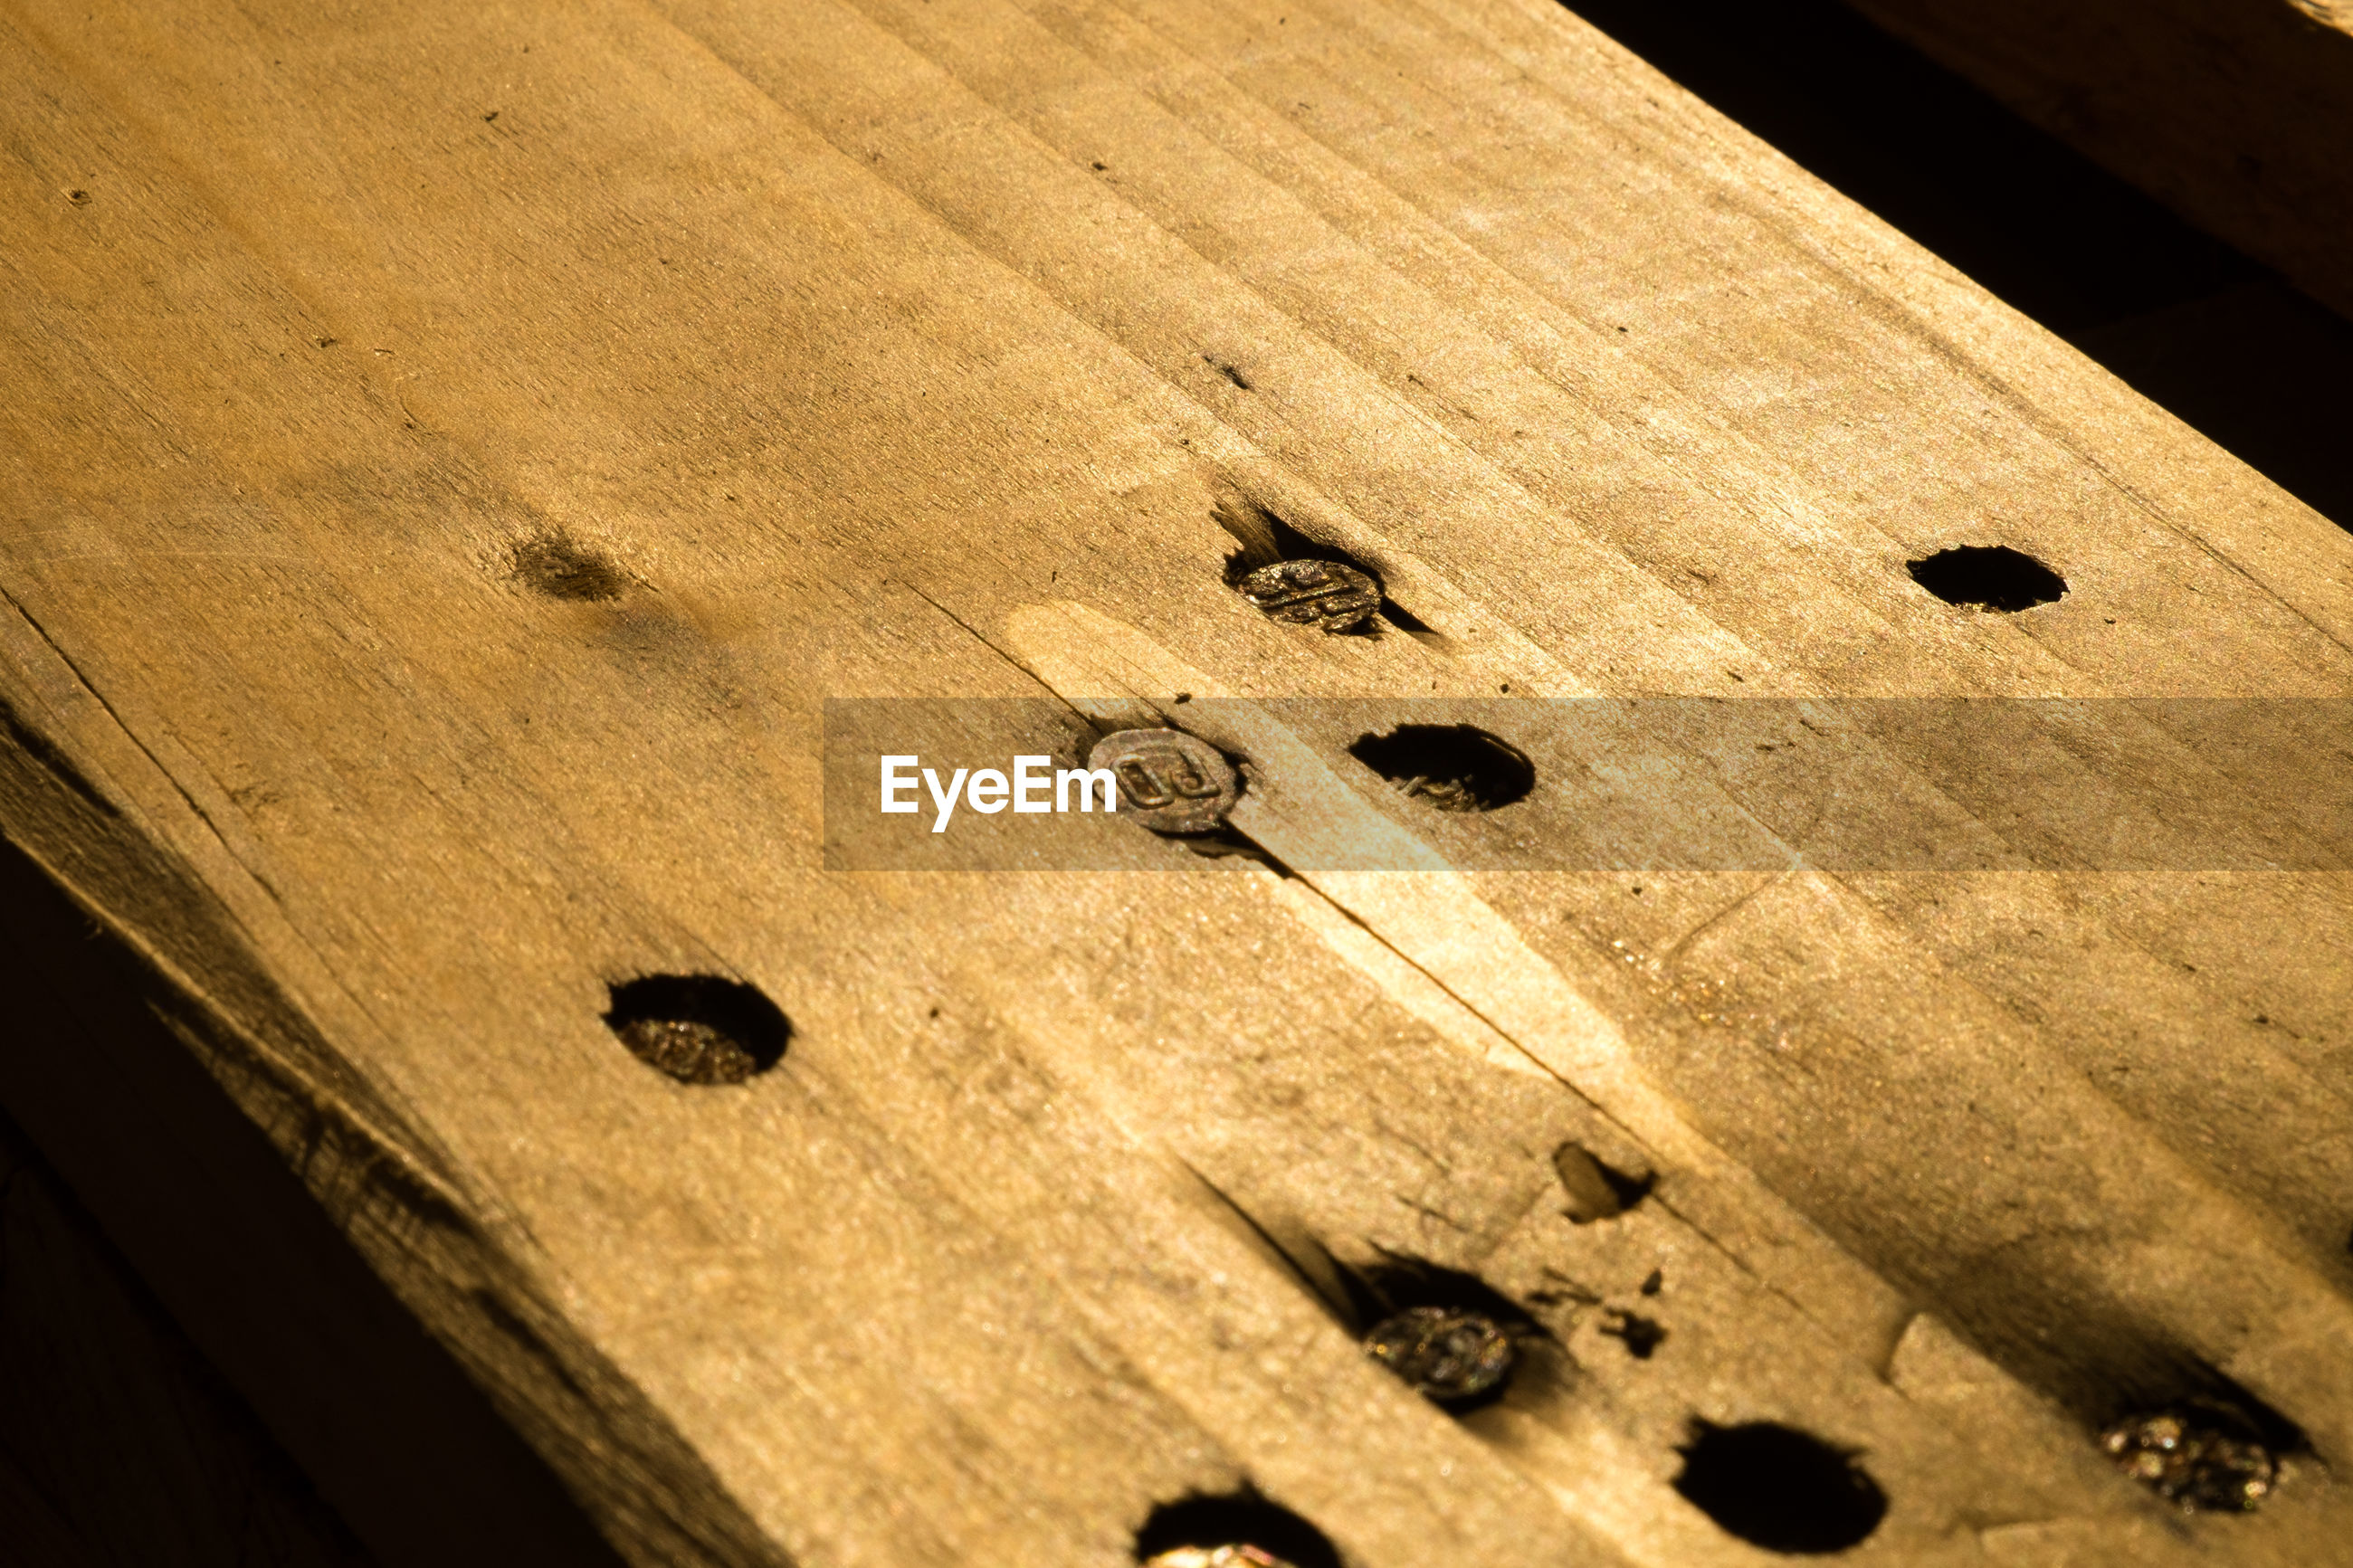 HIGH ANGLE VIEW OF WOOD ON WOODEN FLOOR